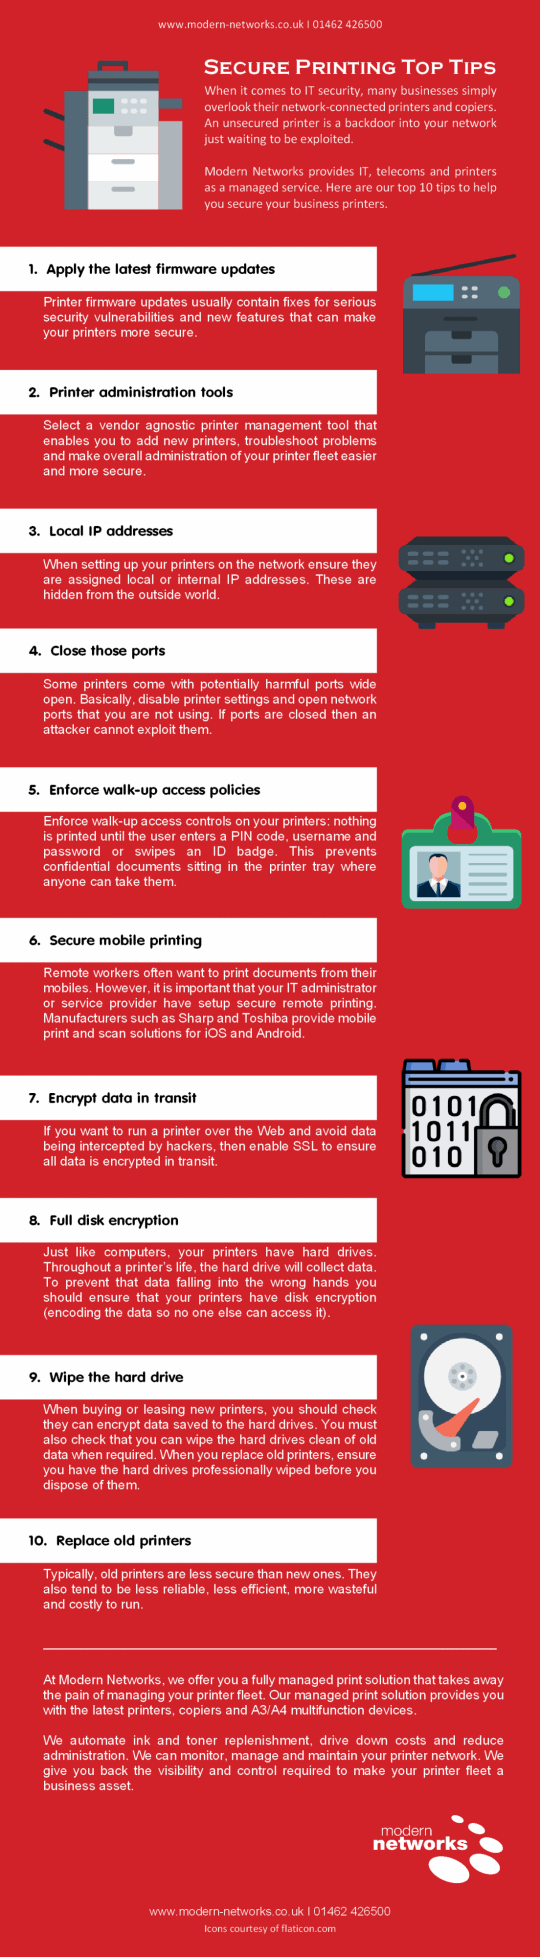 Secure printing top tips infographic